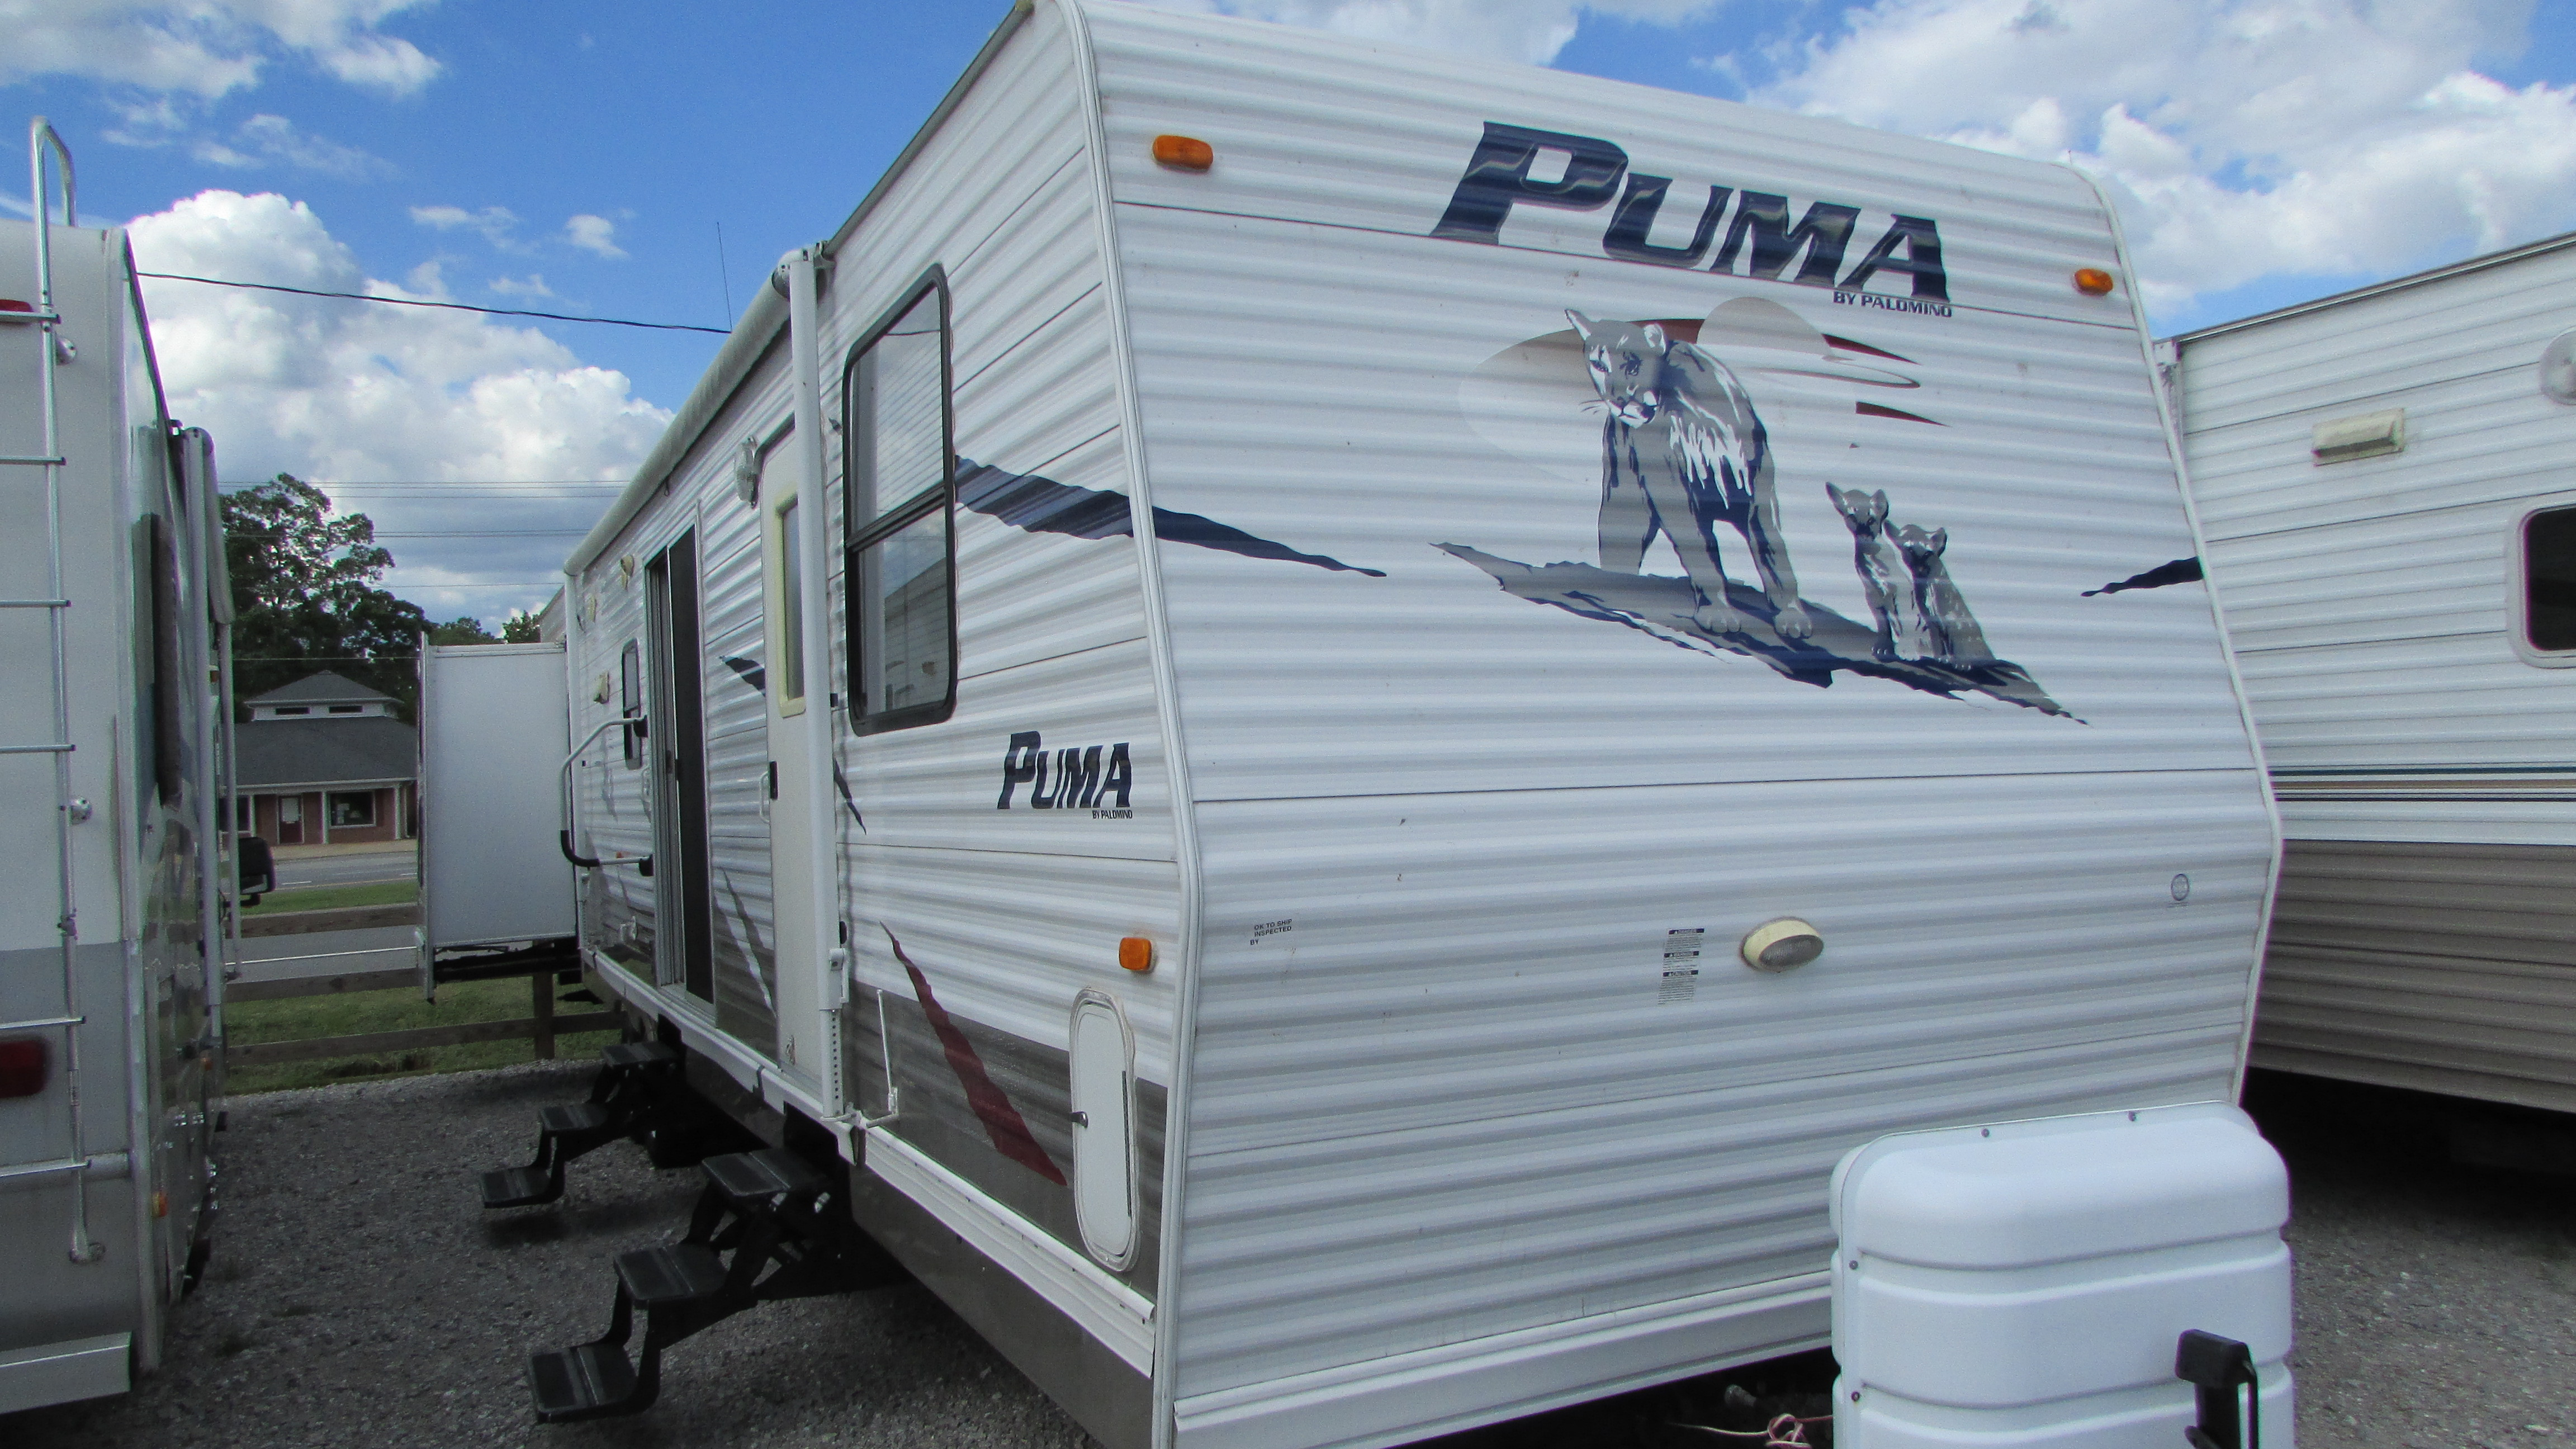 Best ideas about 2 Bedroom Travel Trailer . Save or Pin 2009 Palomino Puma 39PTDBSS Destination Travel Trailer 3 Now.